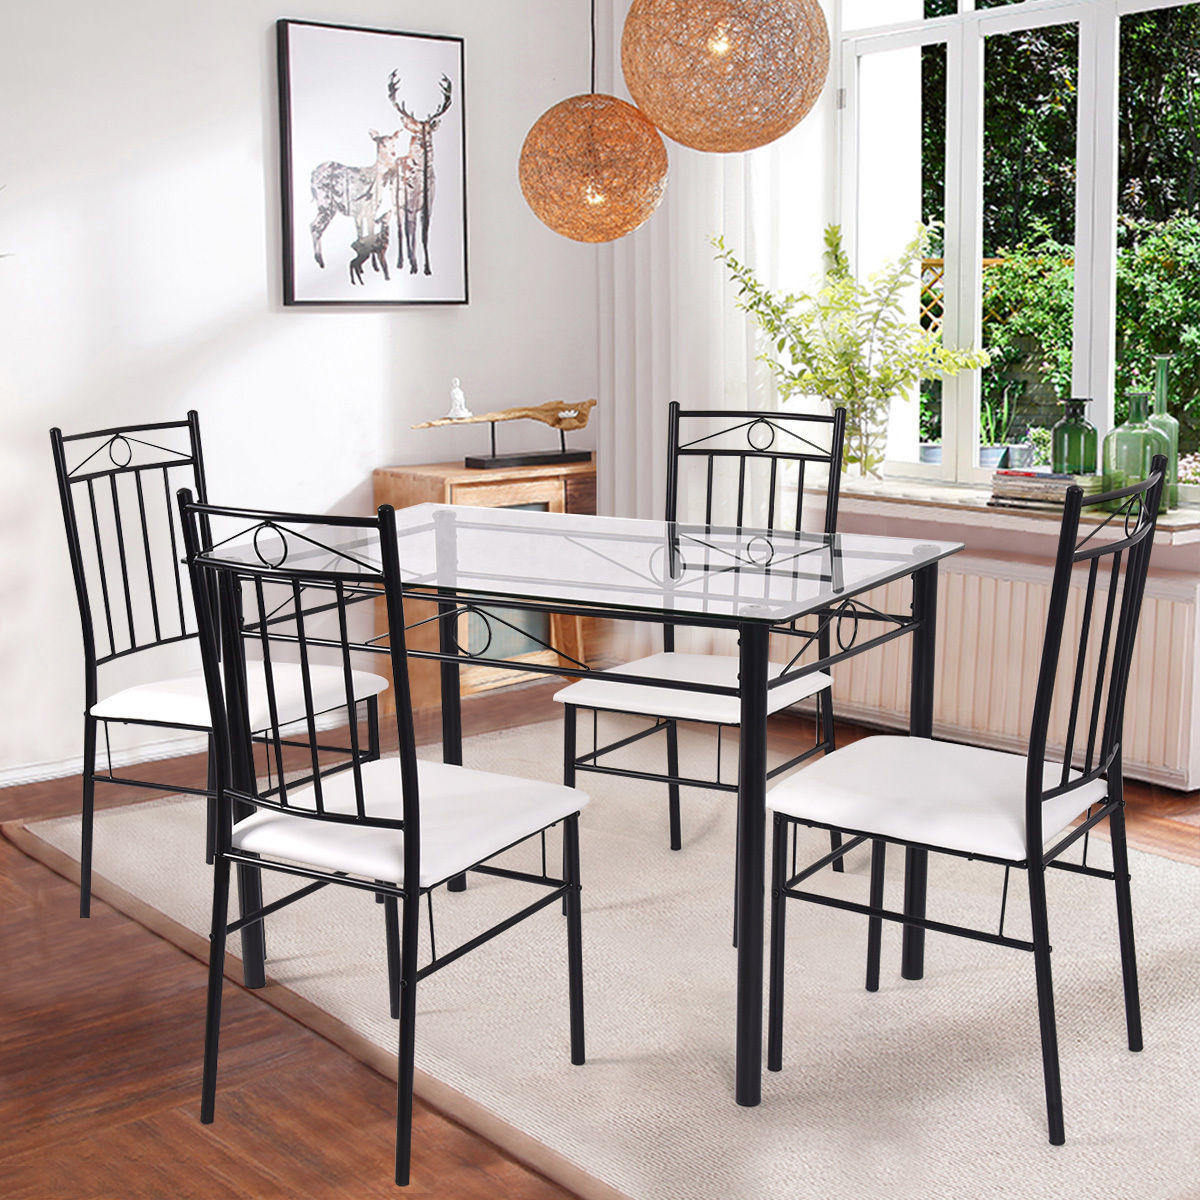 Charmant Costway 5 Piece Dining Set Glass Metal Table And 4 Chairs Kitchen Breakfast  Furniture